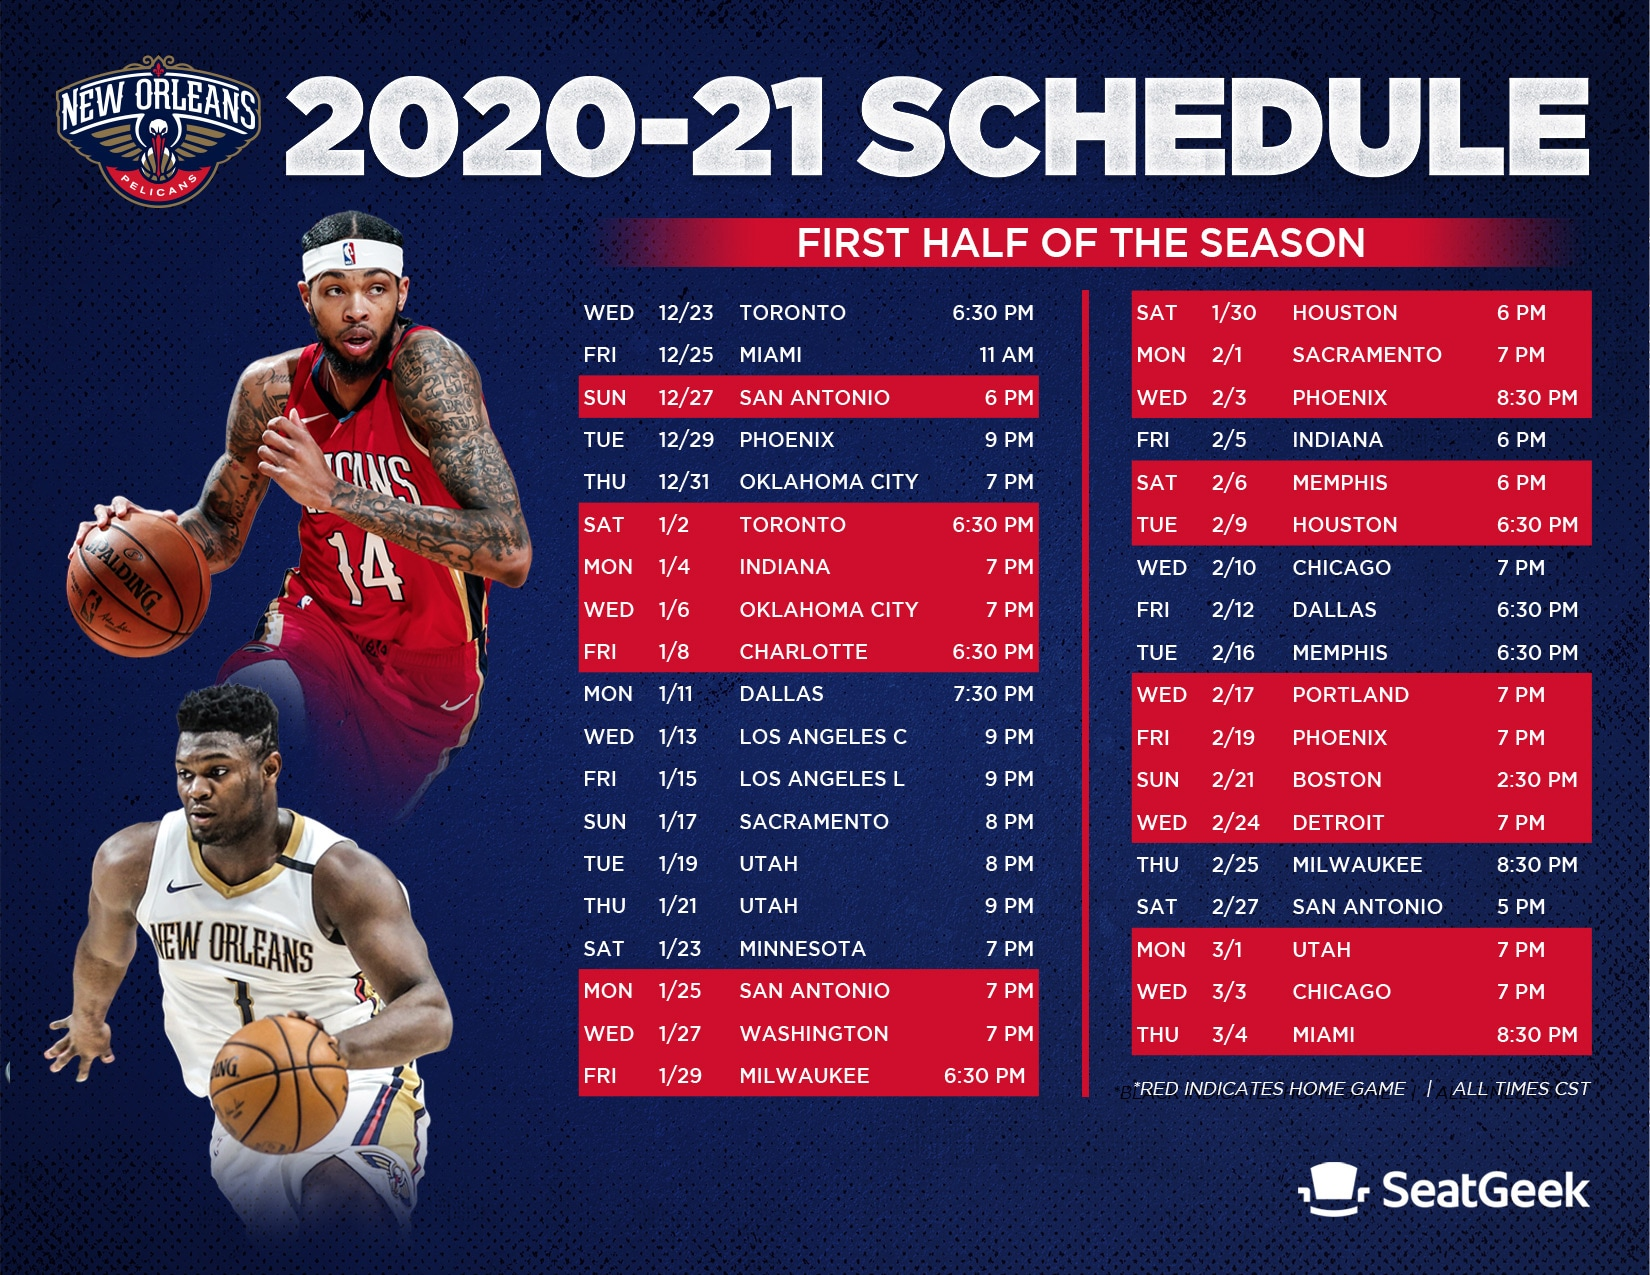 Download A Printable Pelicans 2020 21 Schedule New Orleans Pelicans